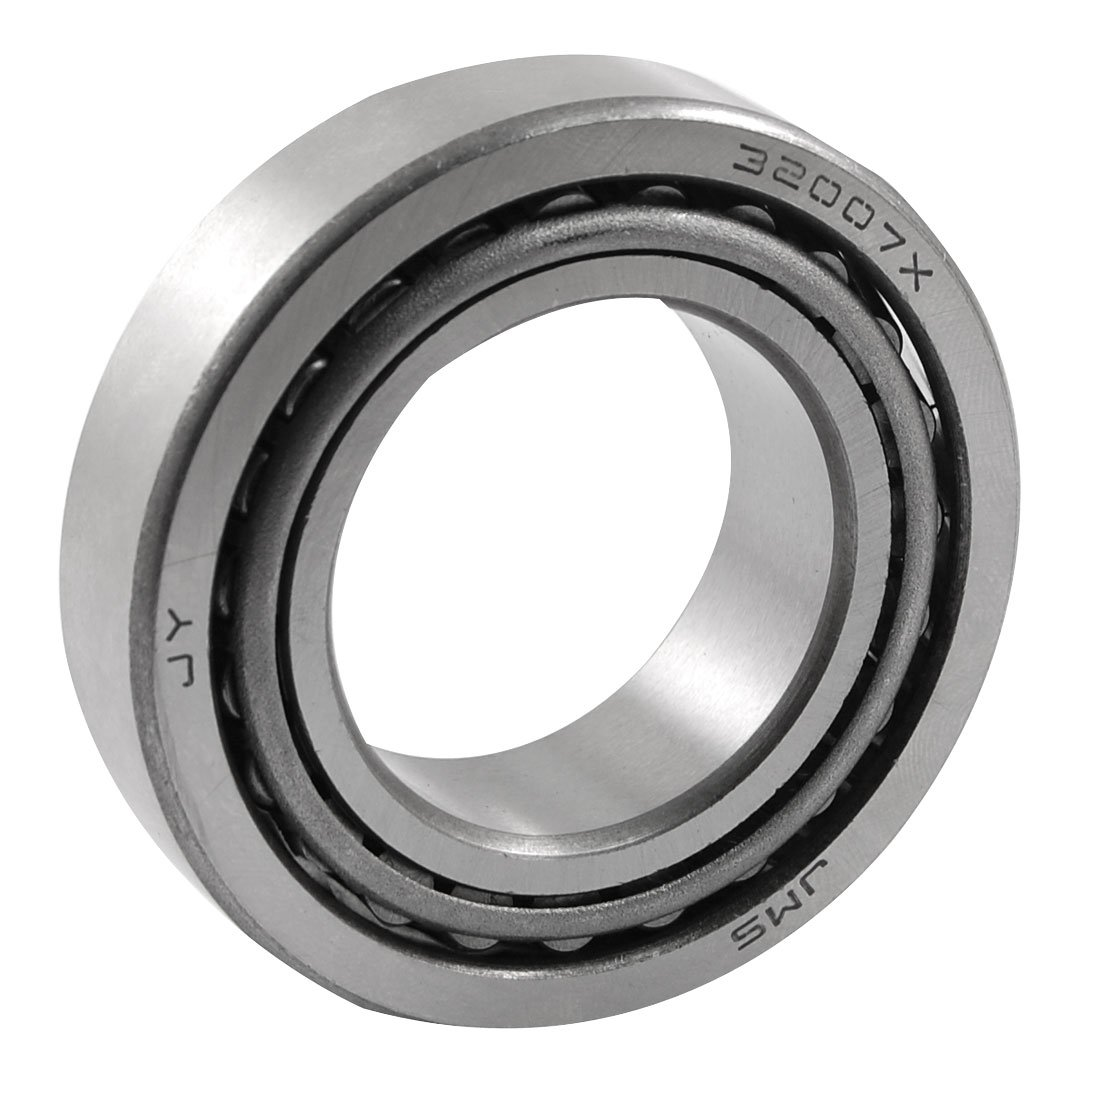 32007 35mm x 62mm x 18mm Single Row Cone Tapered Roller Bearings